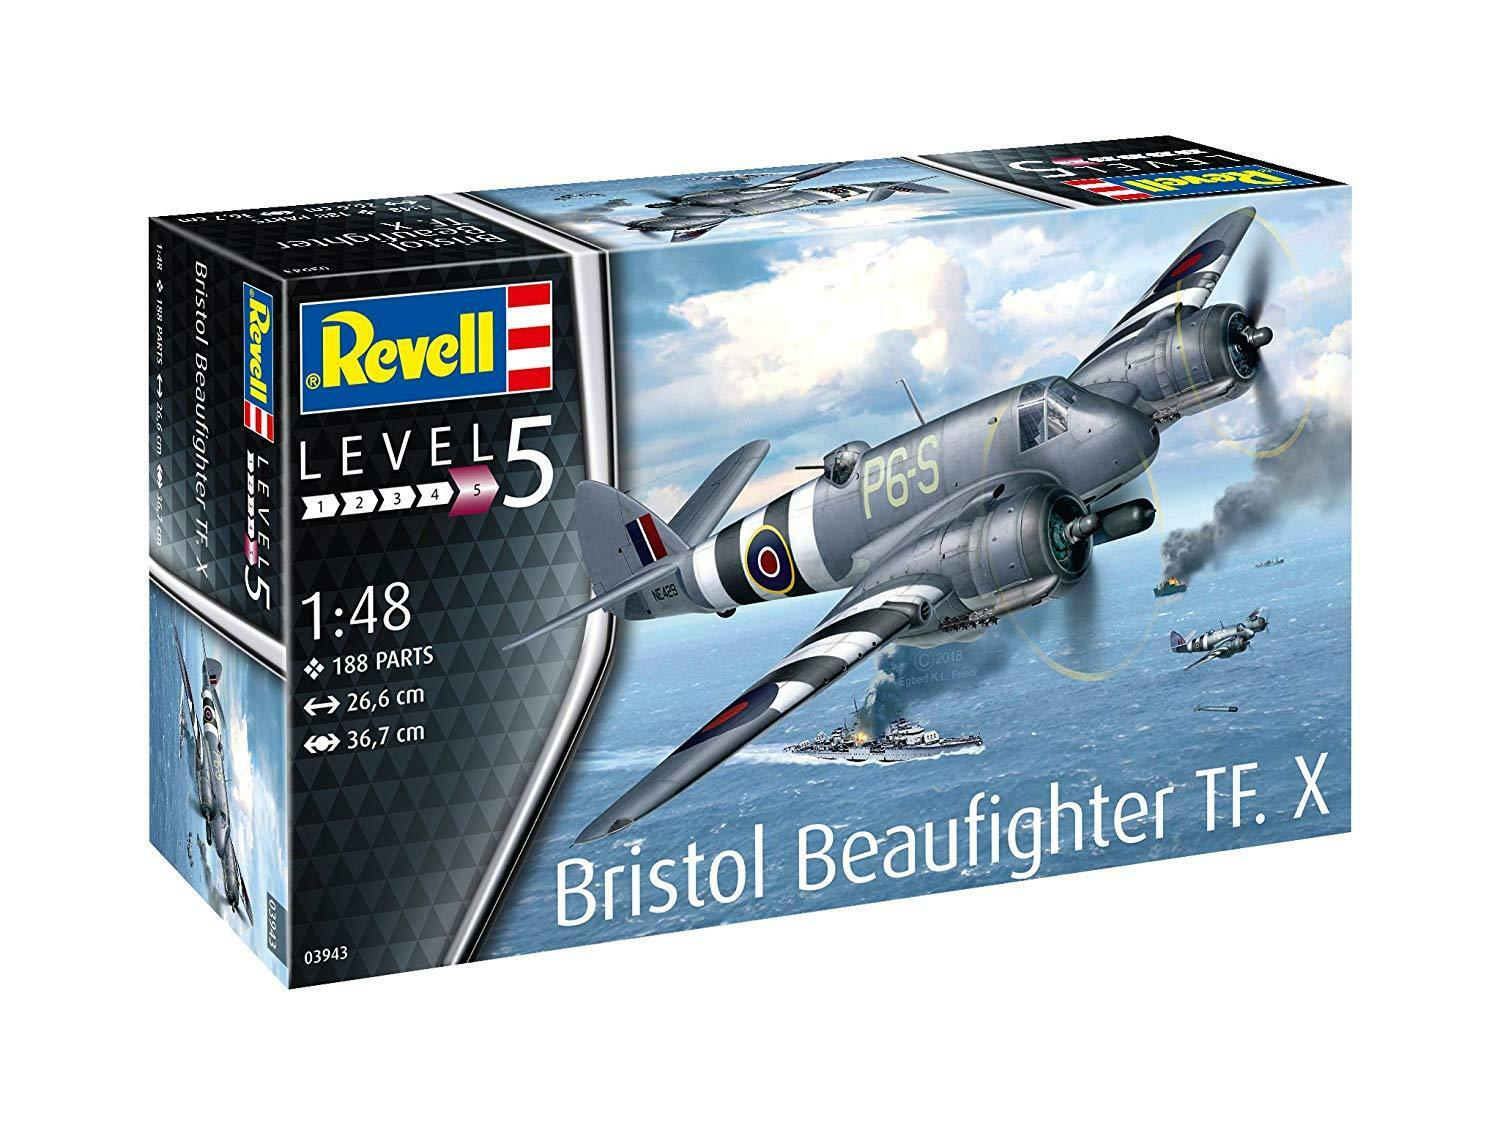 Bristol Beaufighter TF.X 1 48 Level 5 Revell Model Kit